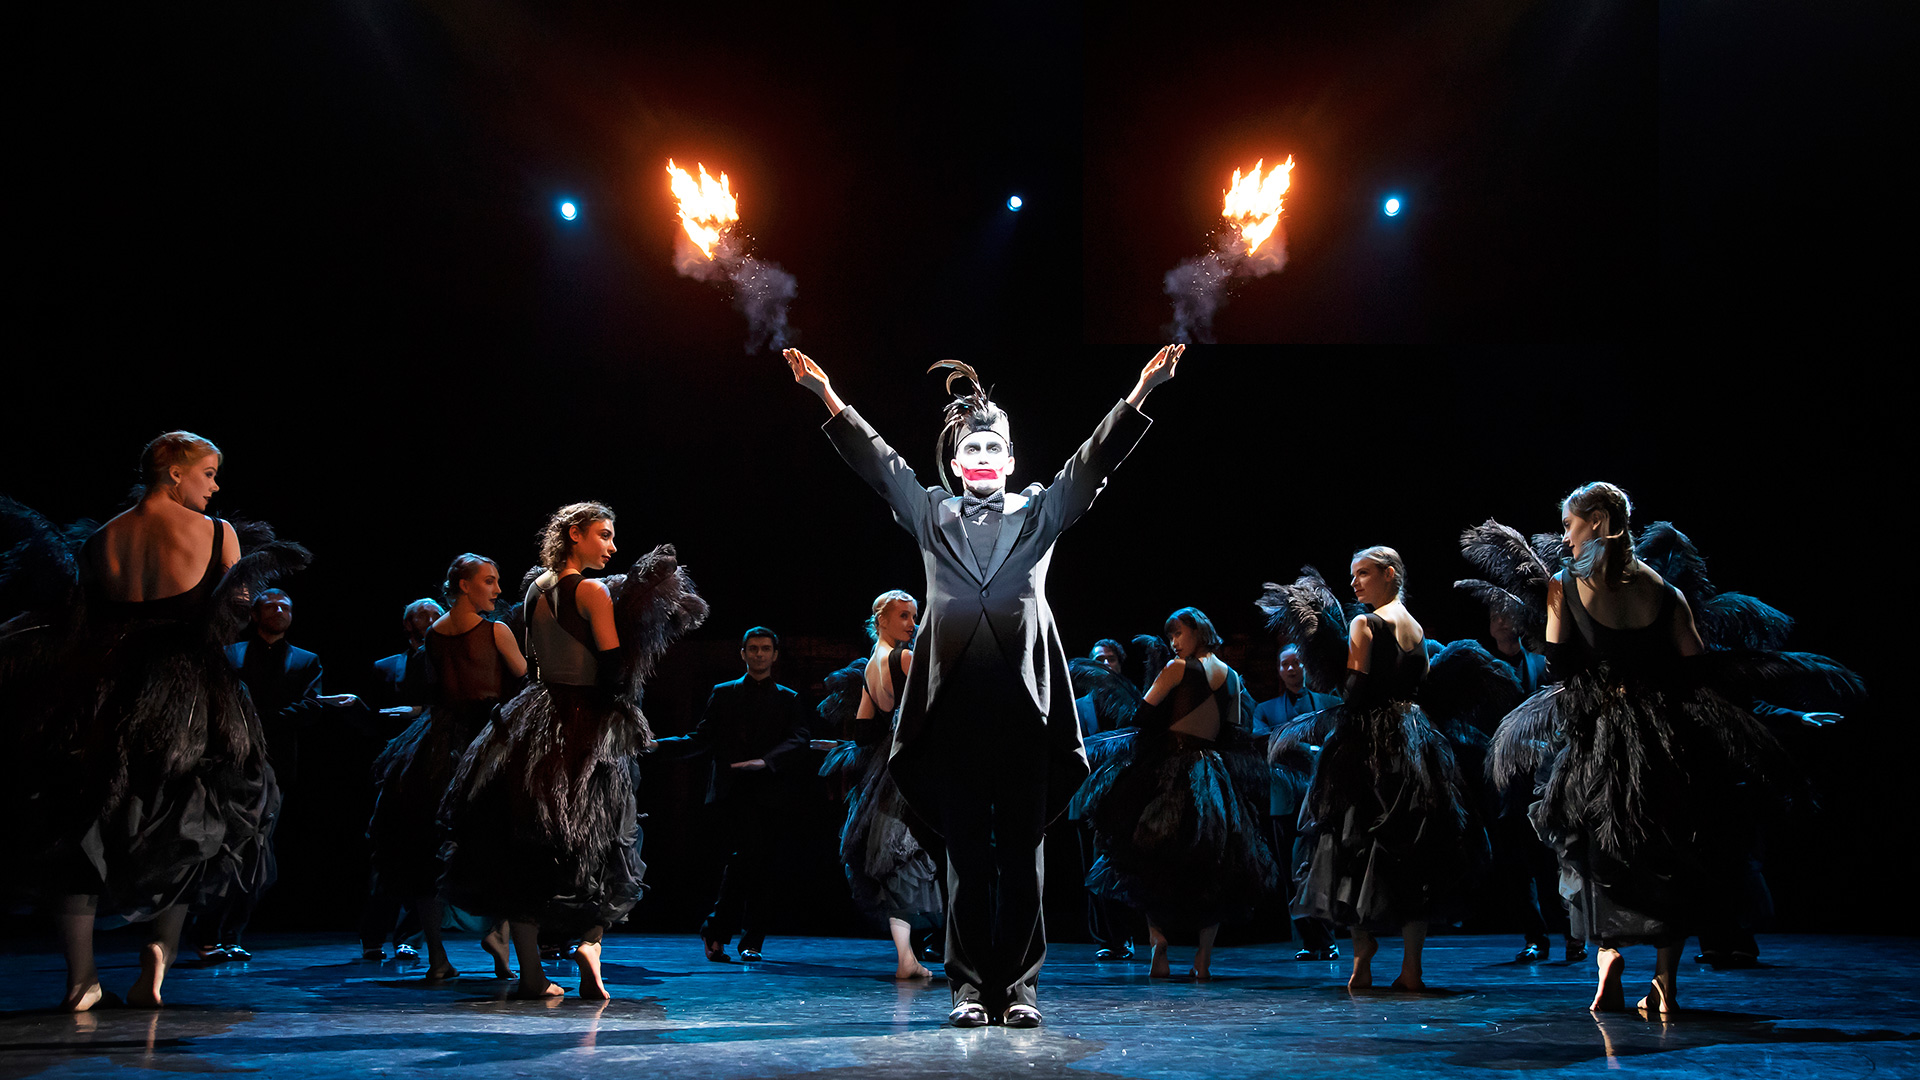 A magician shoots flames in the sky, while the ensemble dances in the background in The Great Bean by Scapino Ballet Rotterdam